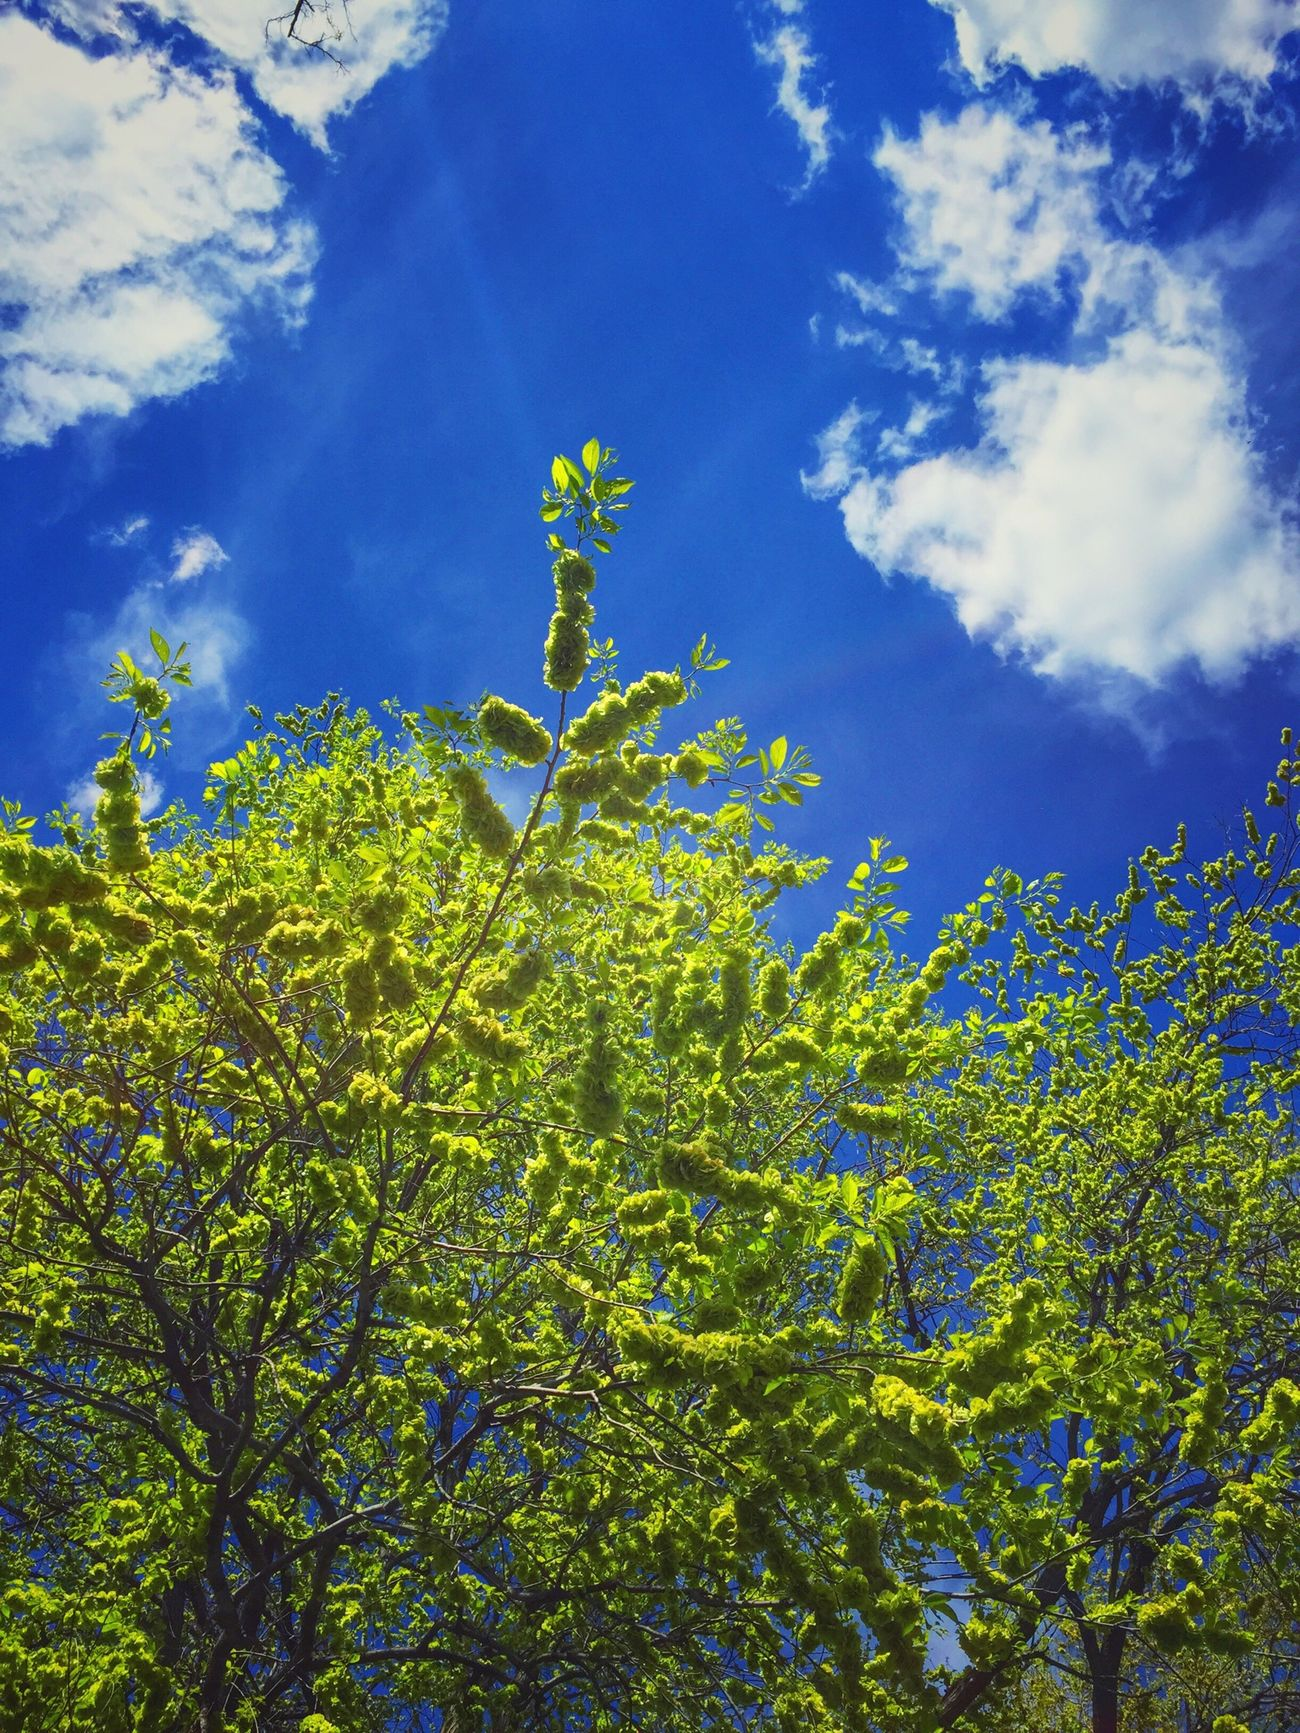 Green flowers in a blue sky Tree Flowers Green Blue Blue Sky Spring Day Spring